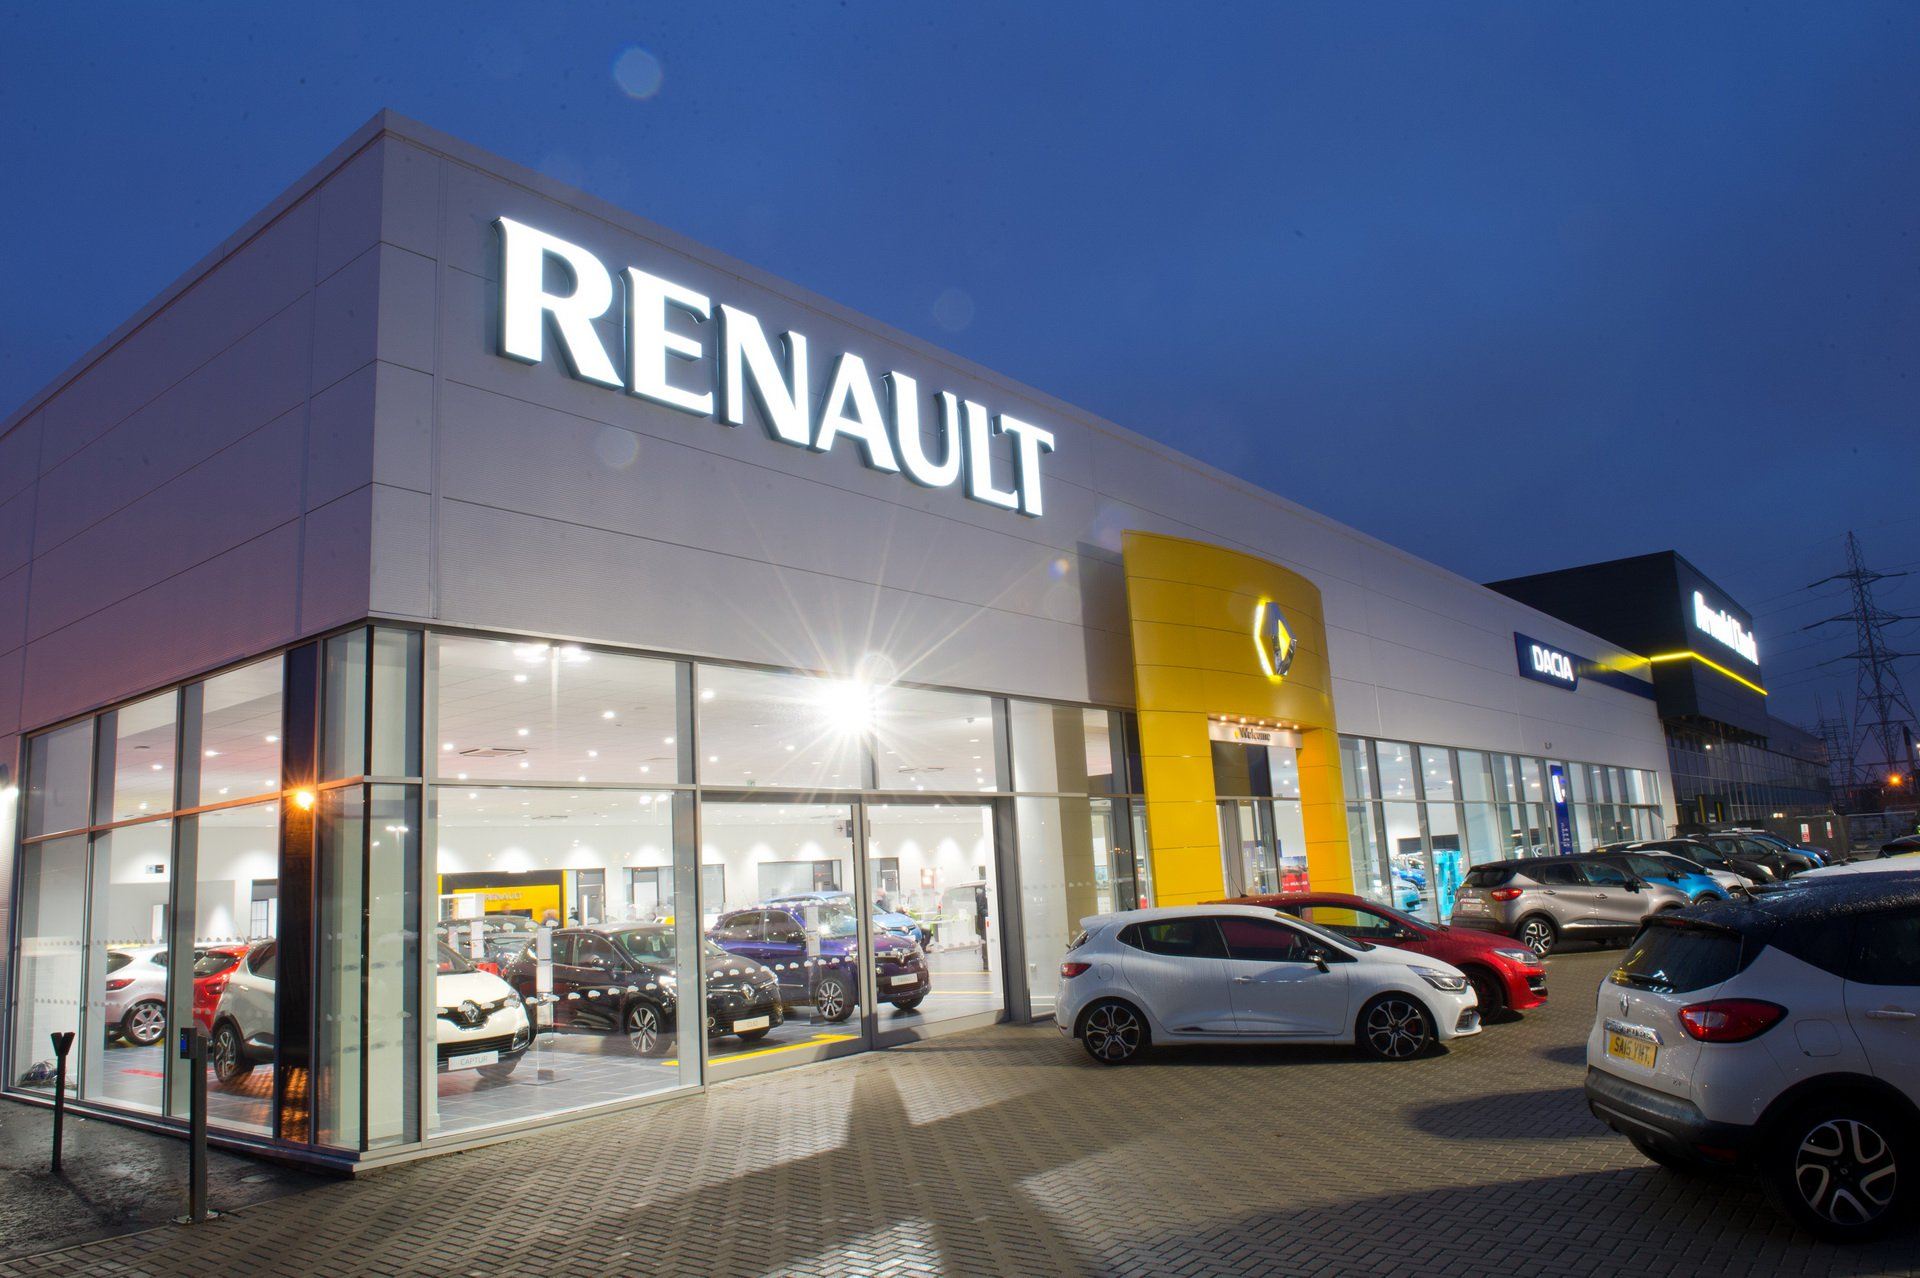 2da52d26-renault-seeks-nissan-merger-and-fca-bid-1